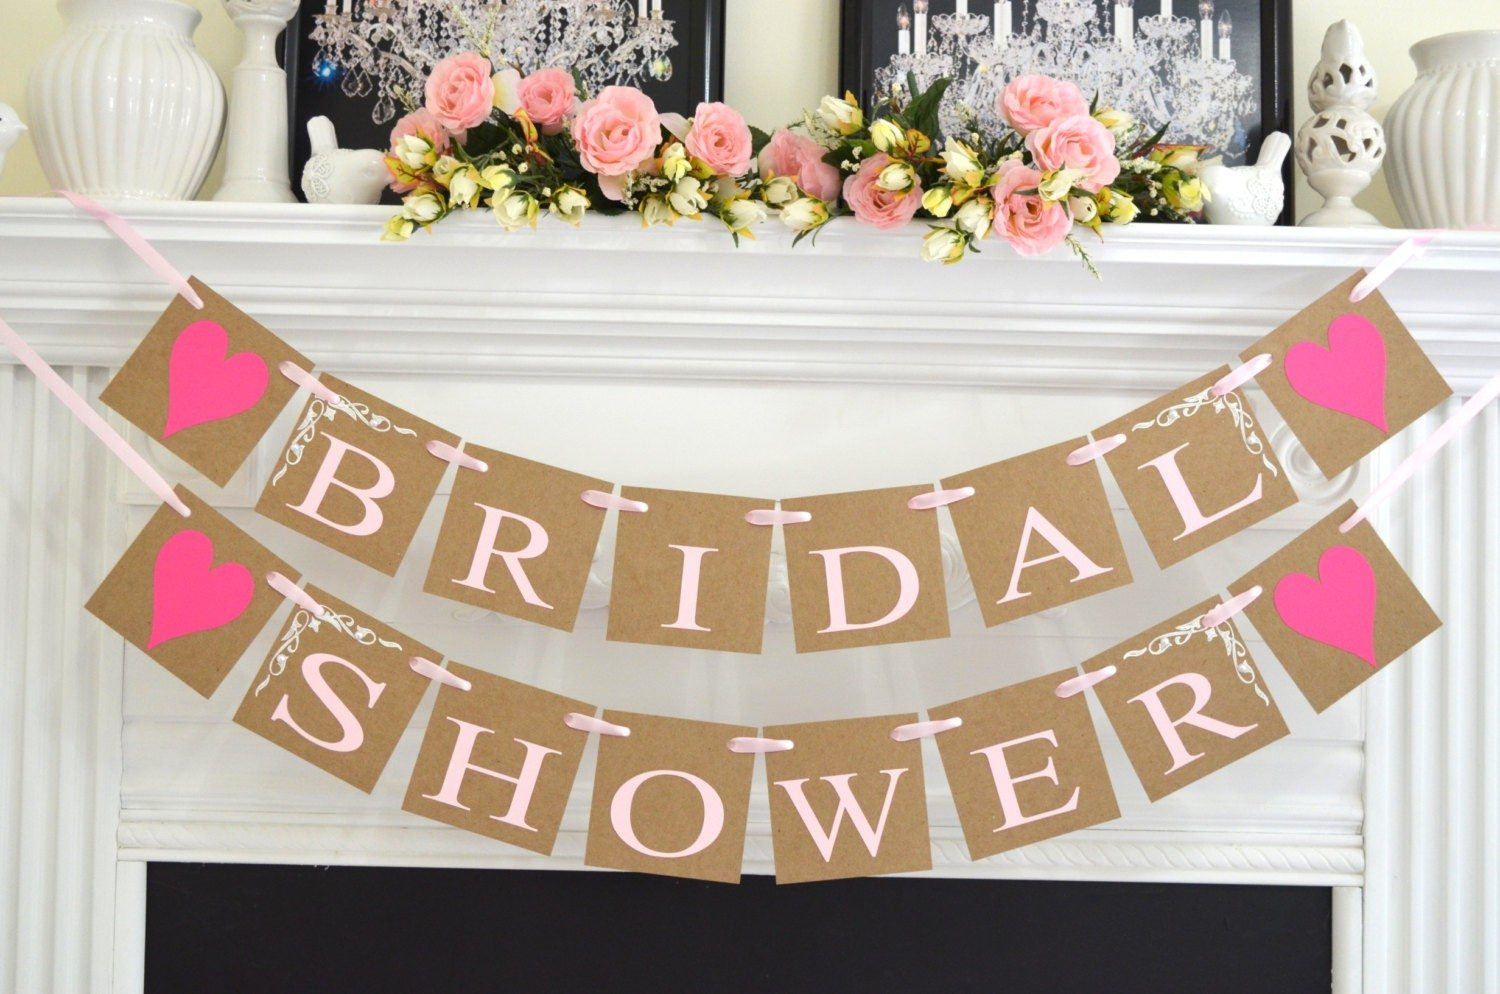 Bridal shower ideas 10 unique ideas for a party for How to decorate for a bridal shower at home